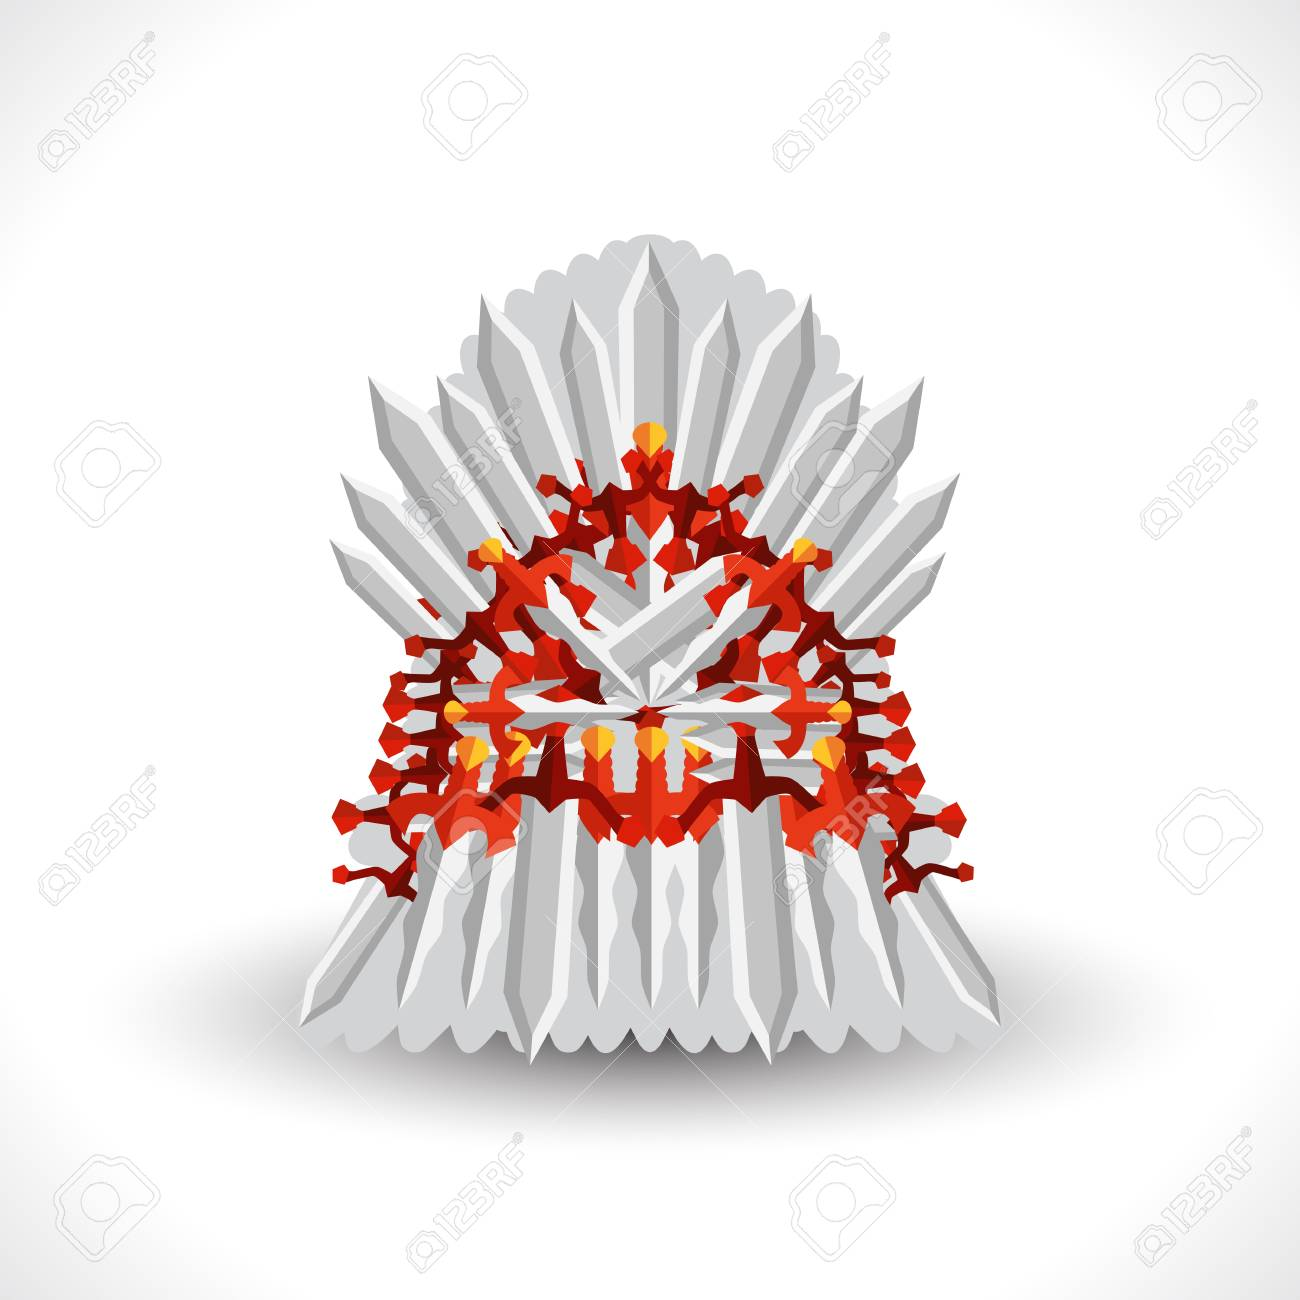 Iron Throne For Computer Games Design Vector Illustration In